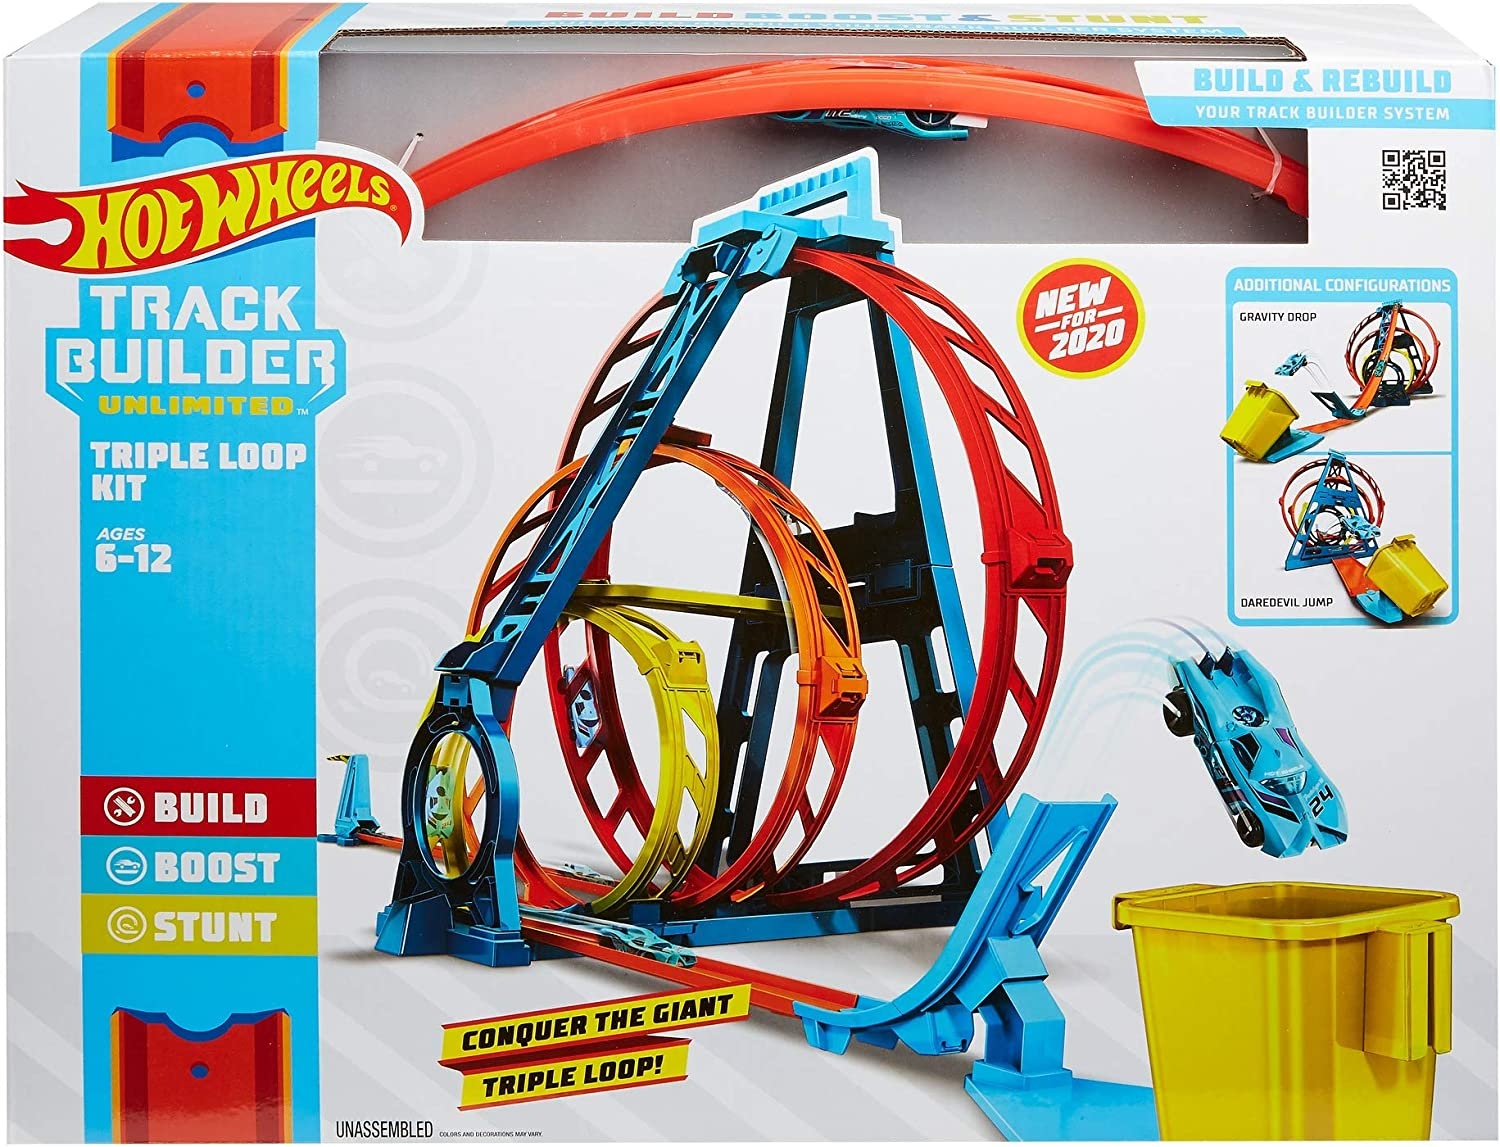 Hot Wheels Track Builder Unlimited Triple Loop Kit Collapsible 3-Loop Gift Set for Kids 6 to 12 Years Old /& One 1:64 Scale Vehicle with Connection Points GYP65